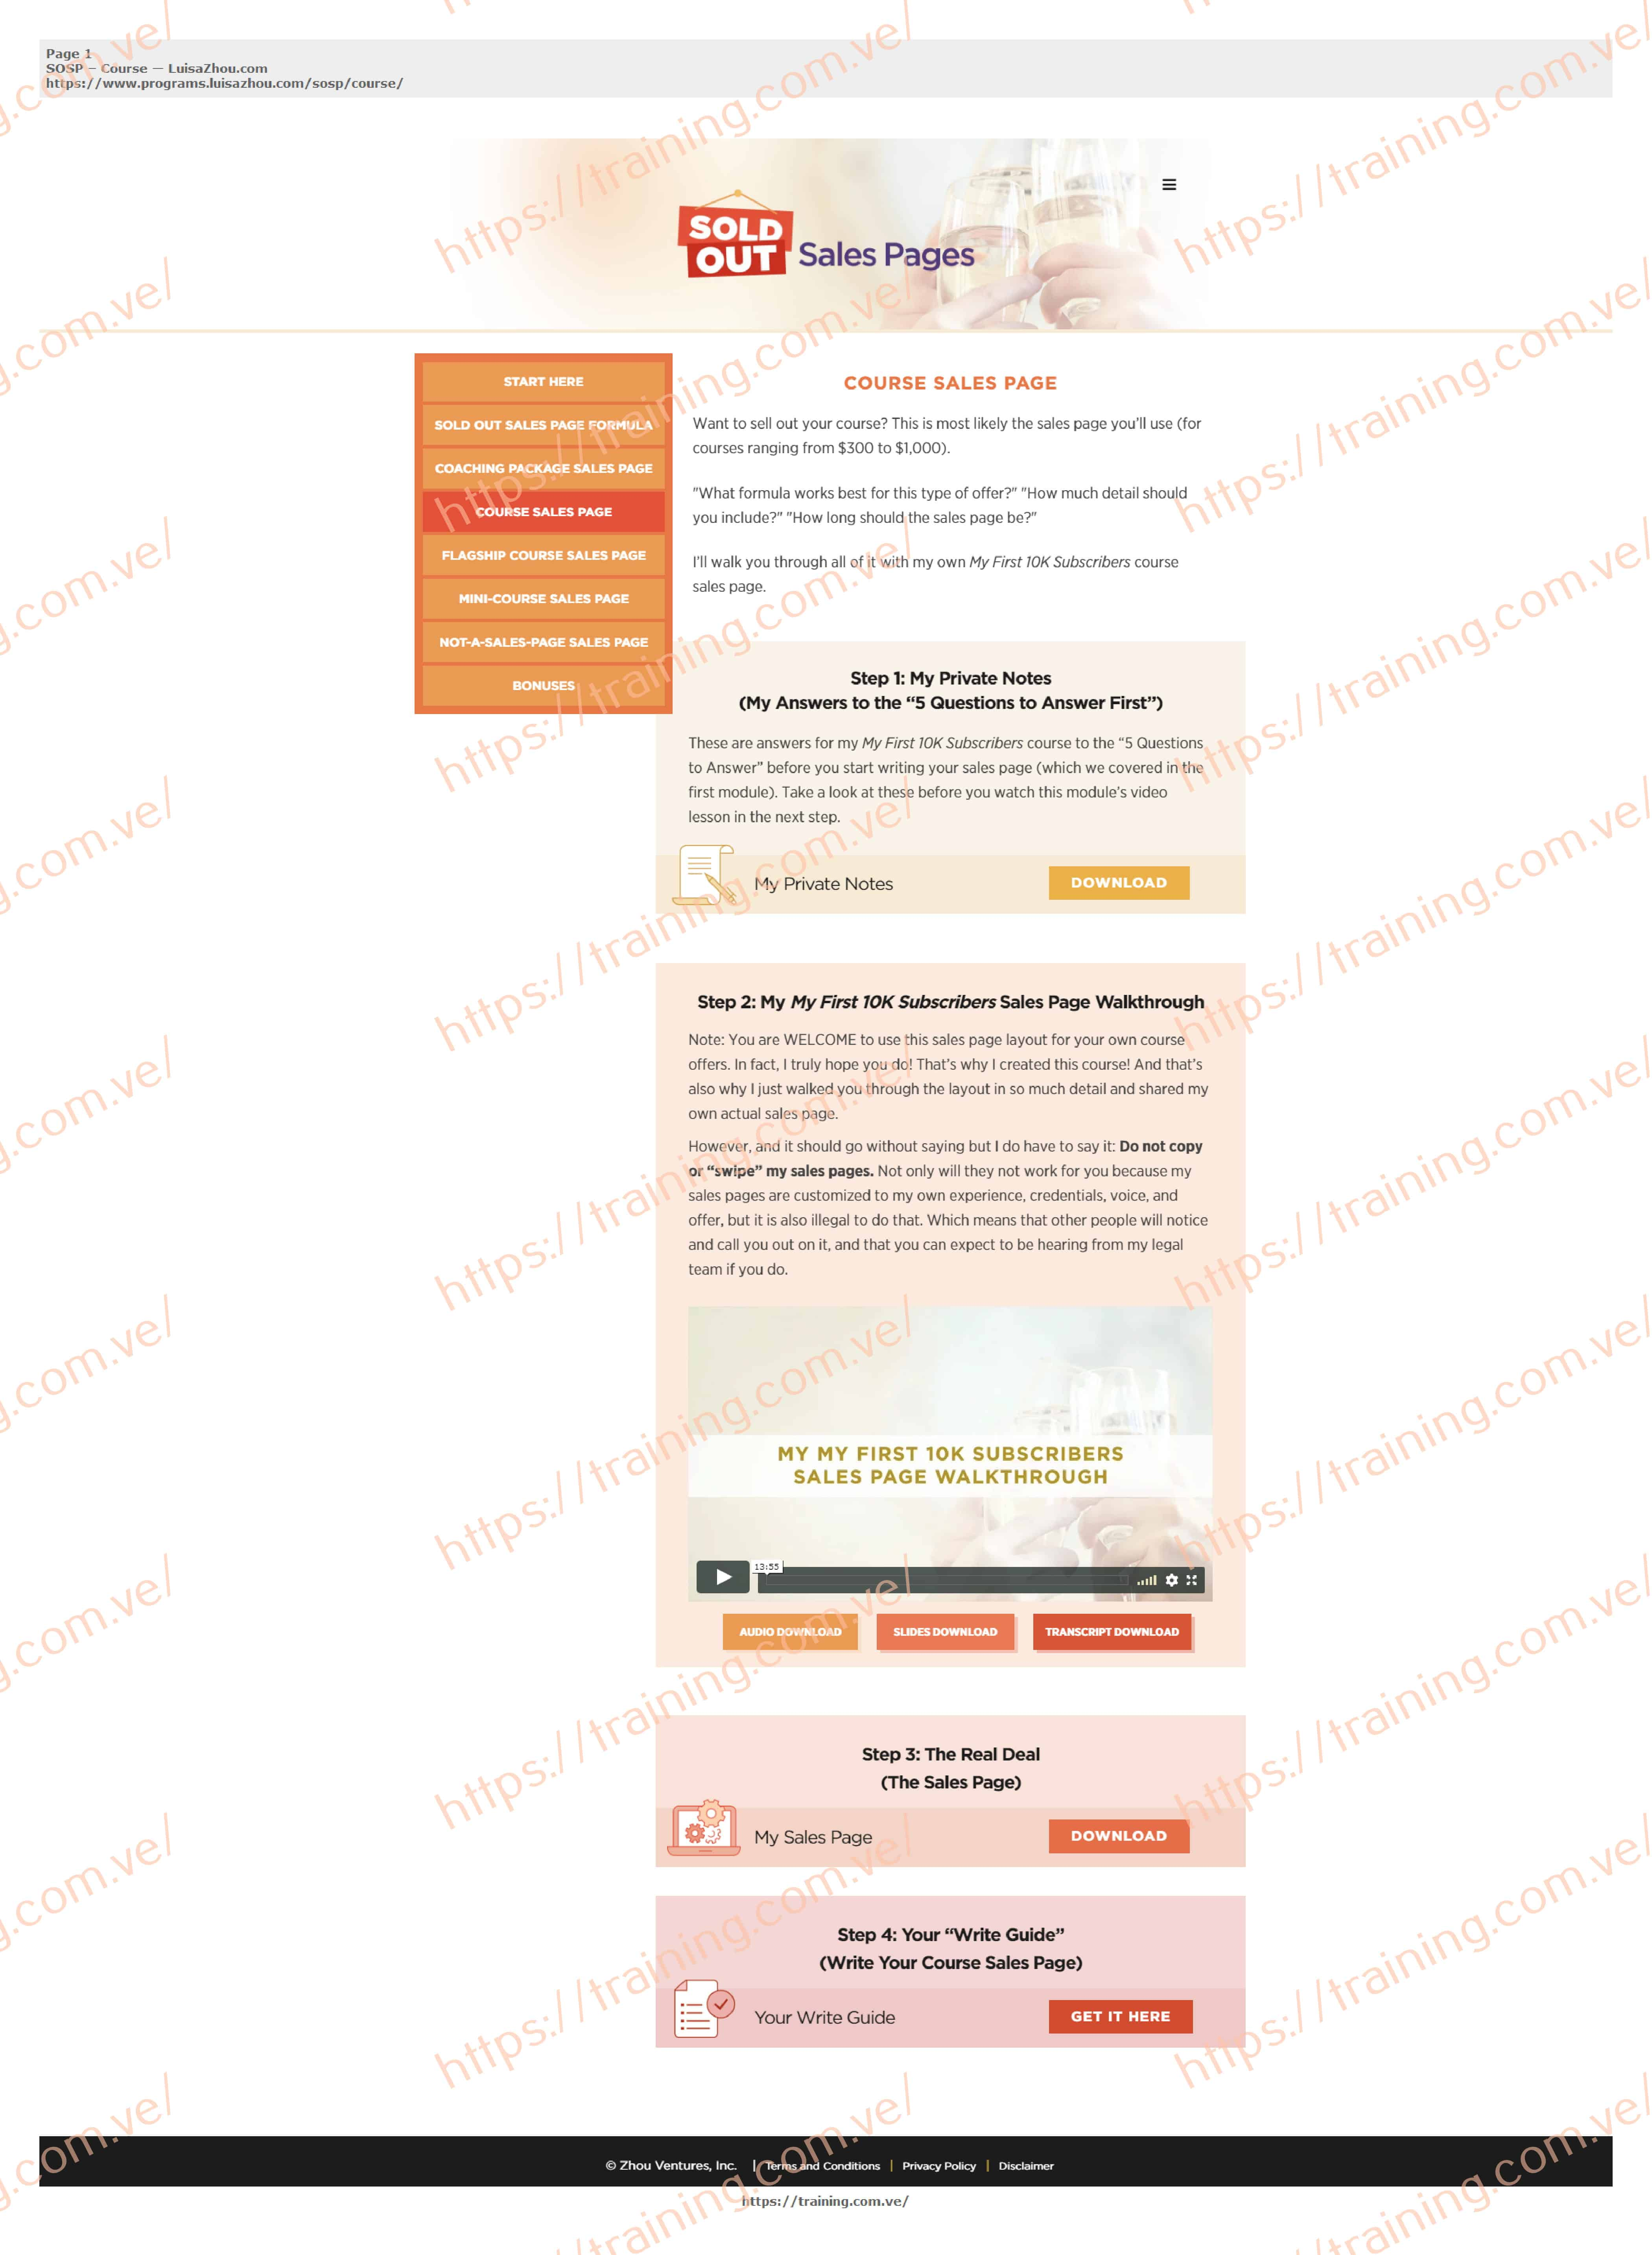 Sold Out Sales Page by Luisa Zhou Download